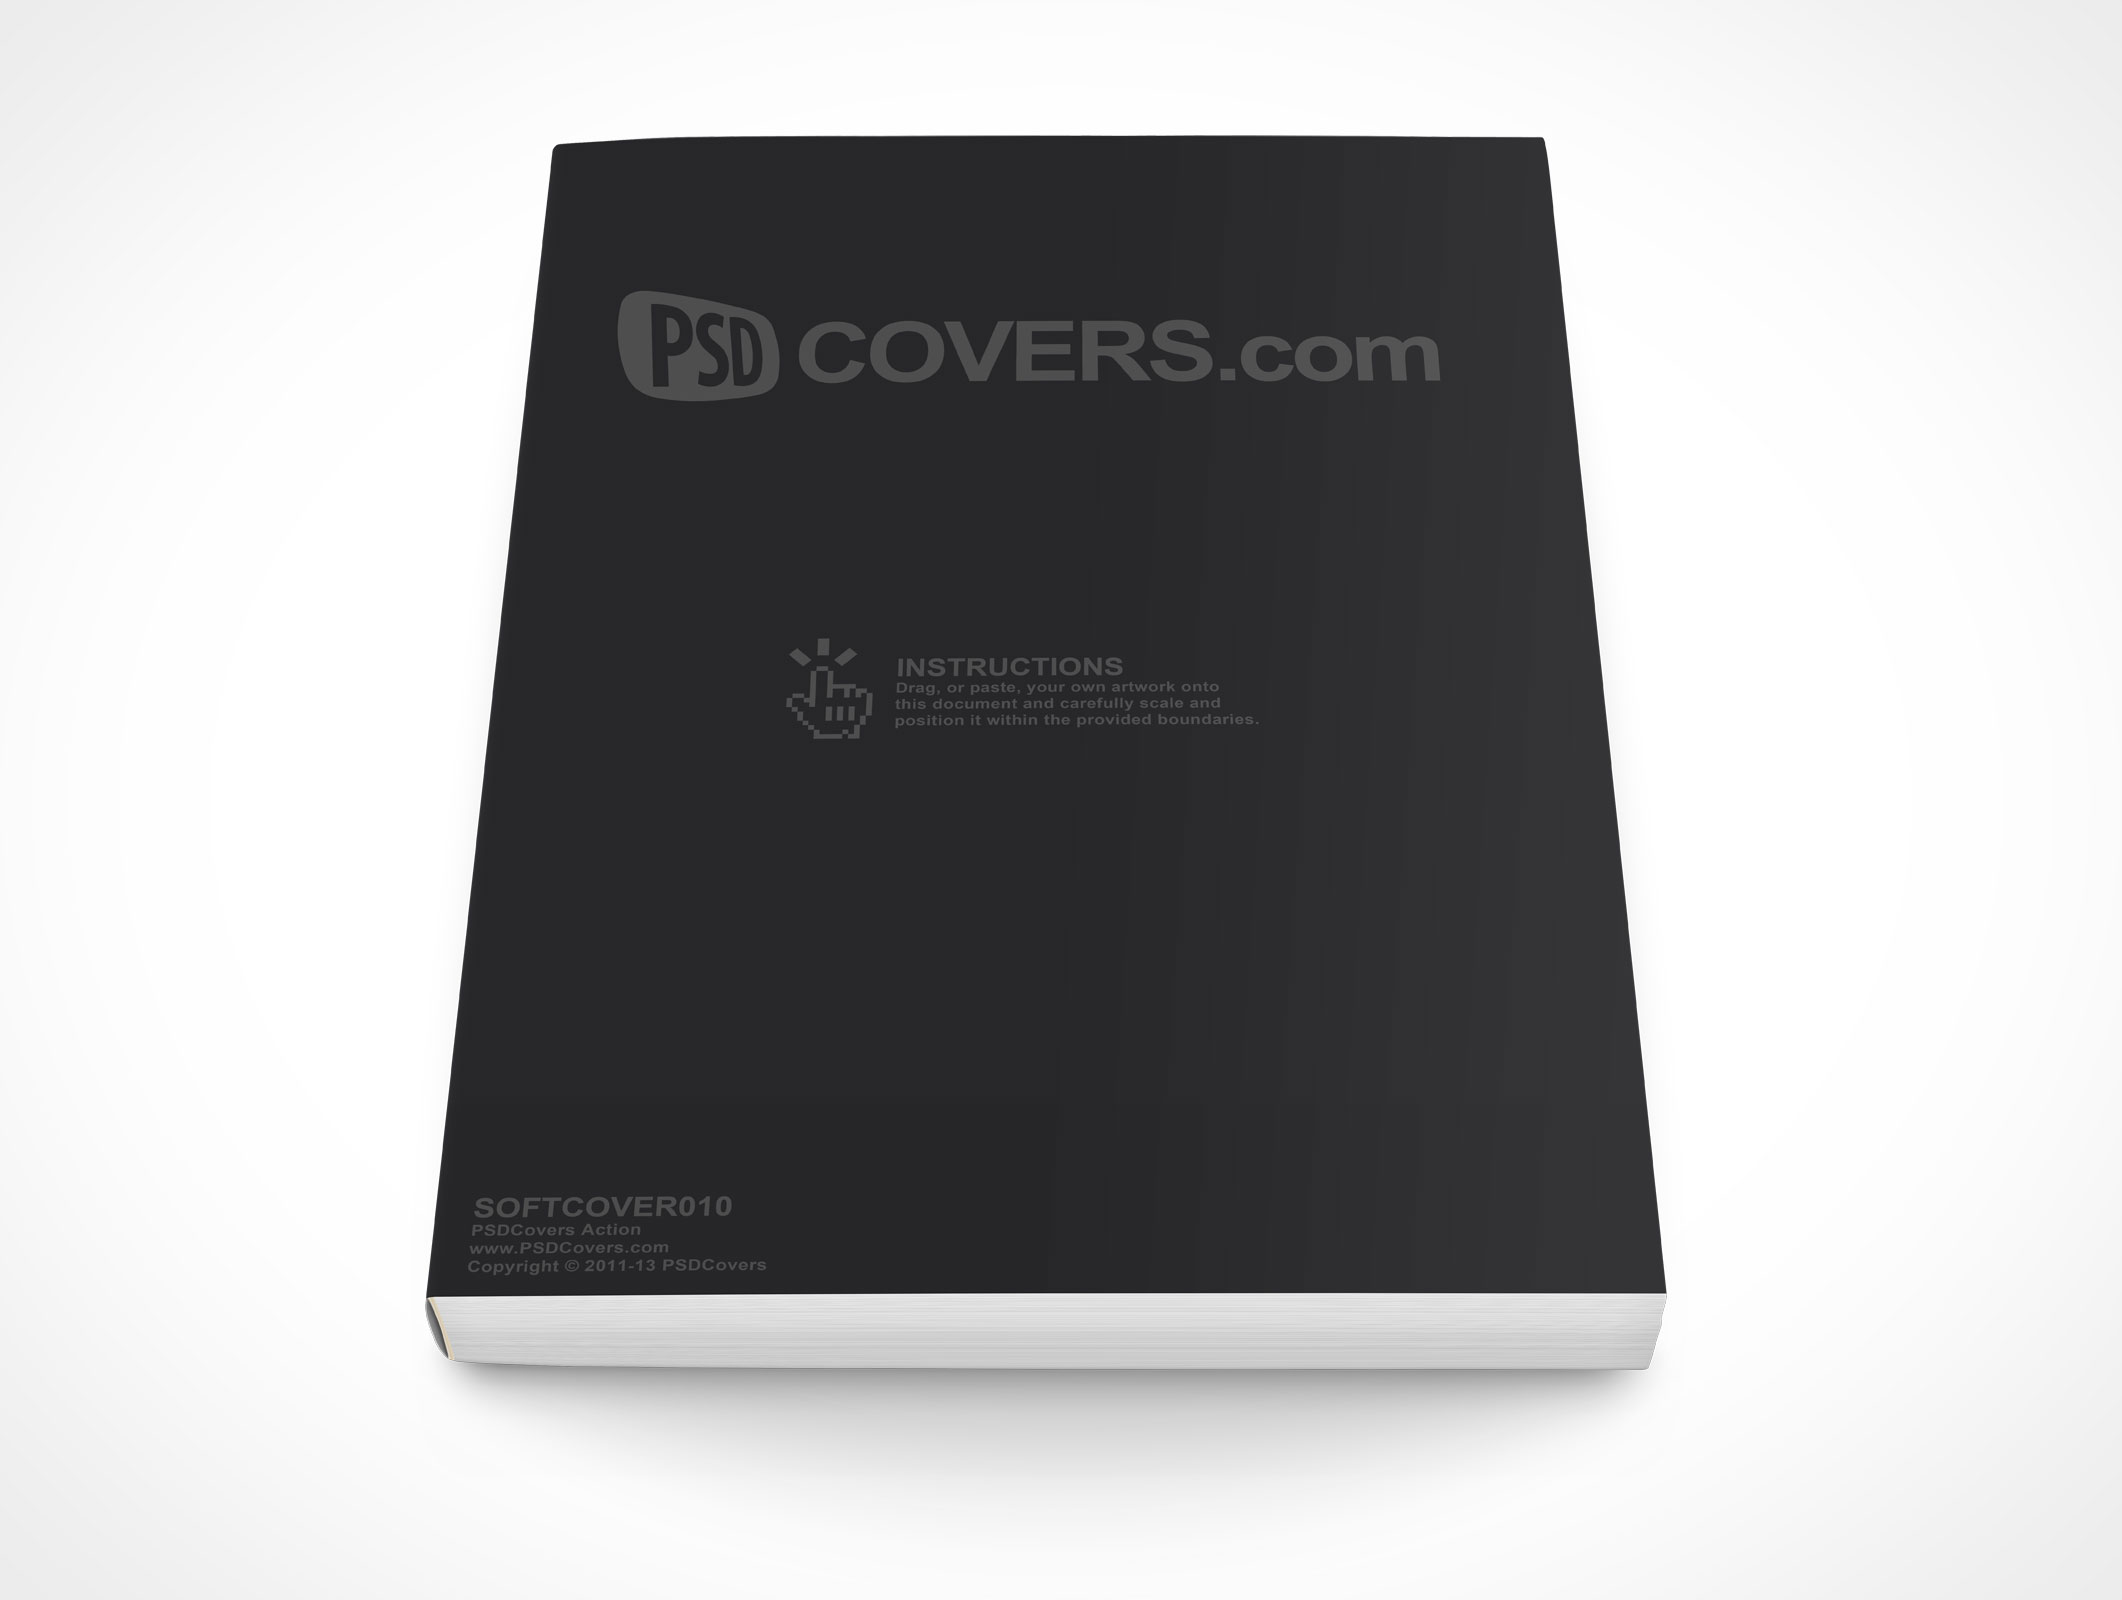 SOFTCOVER010